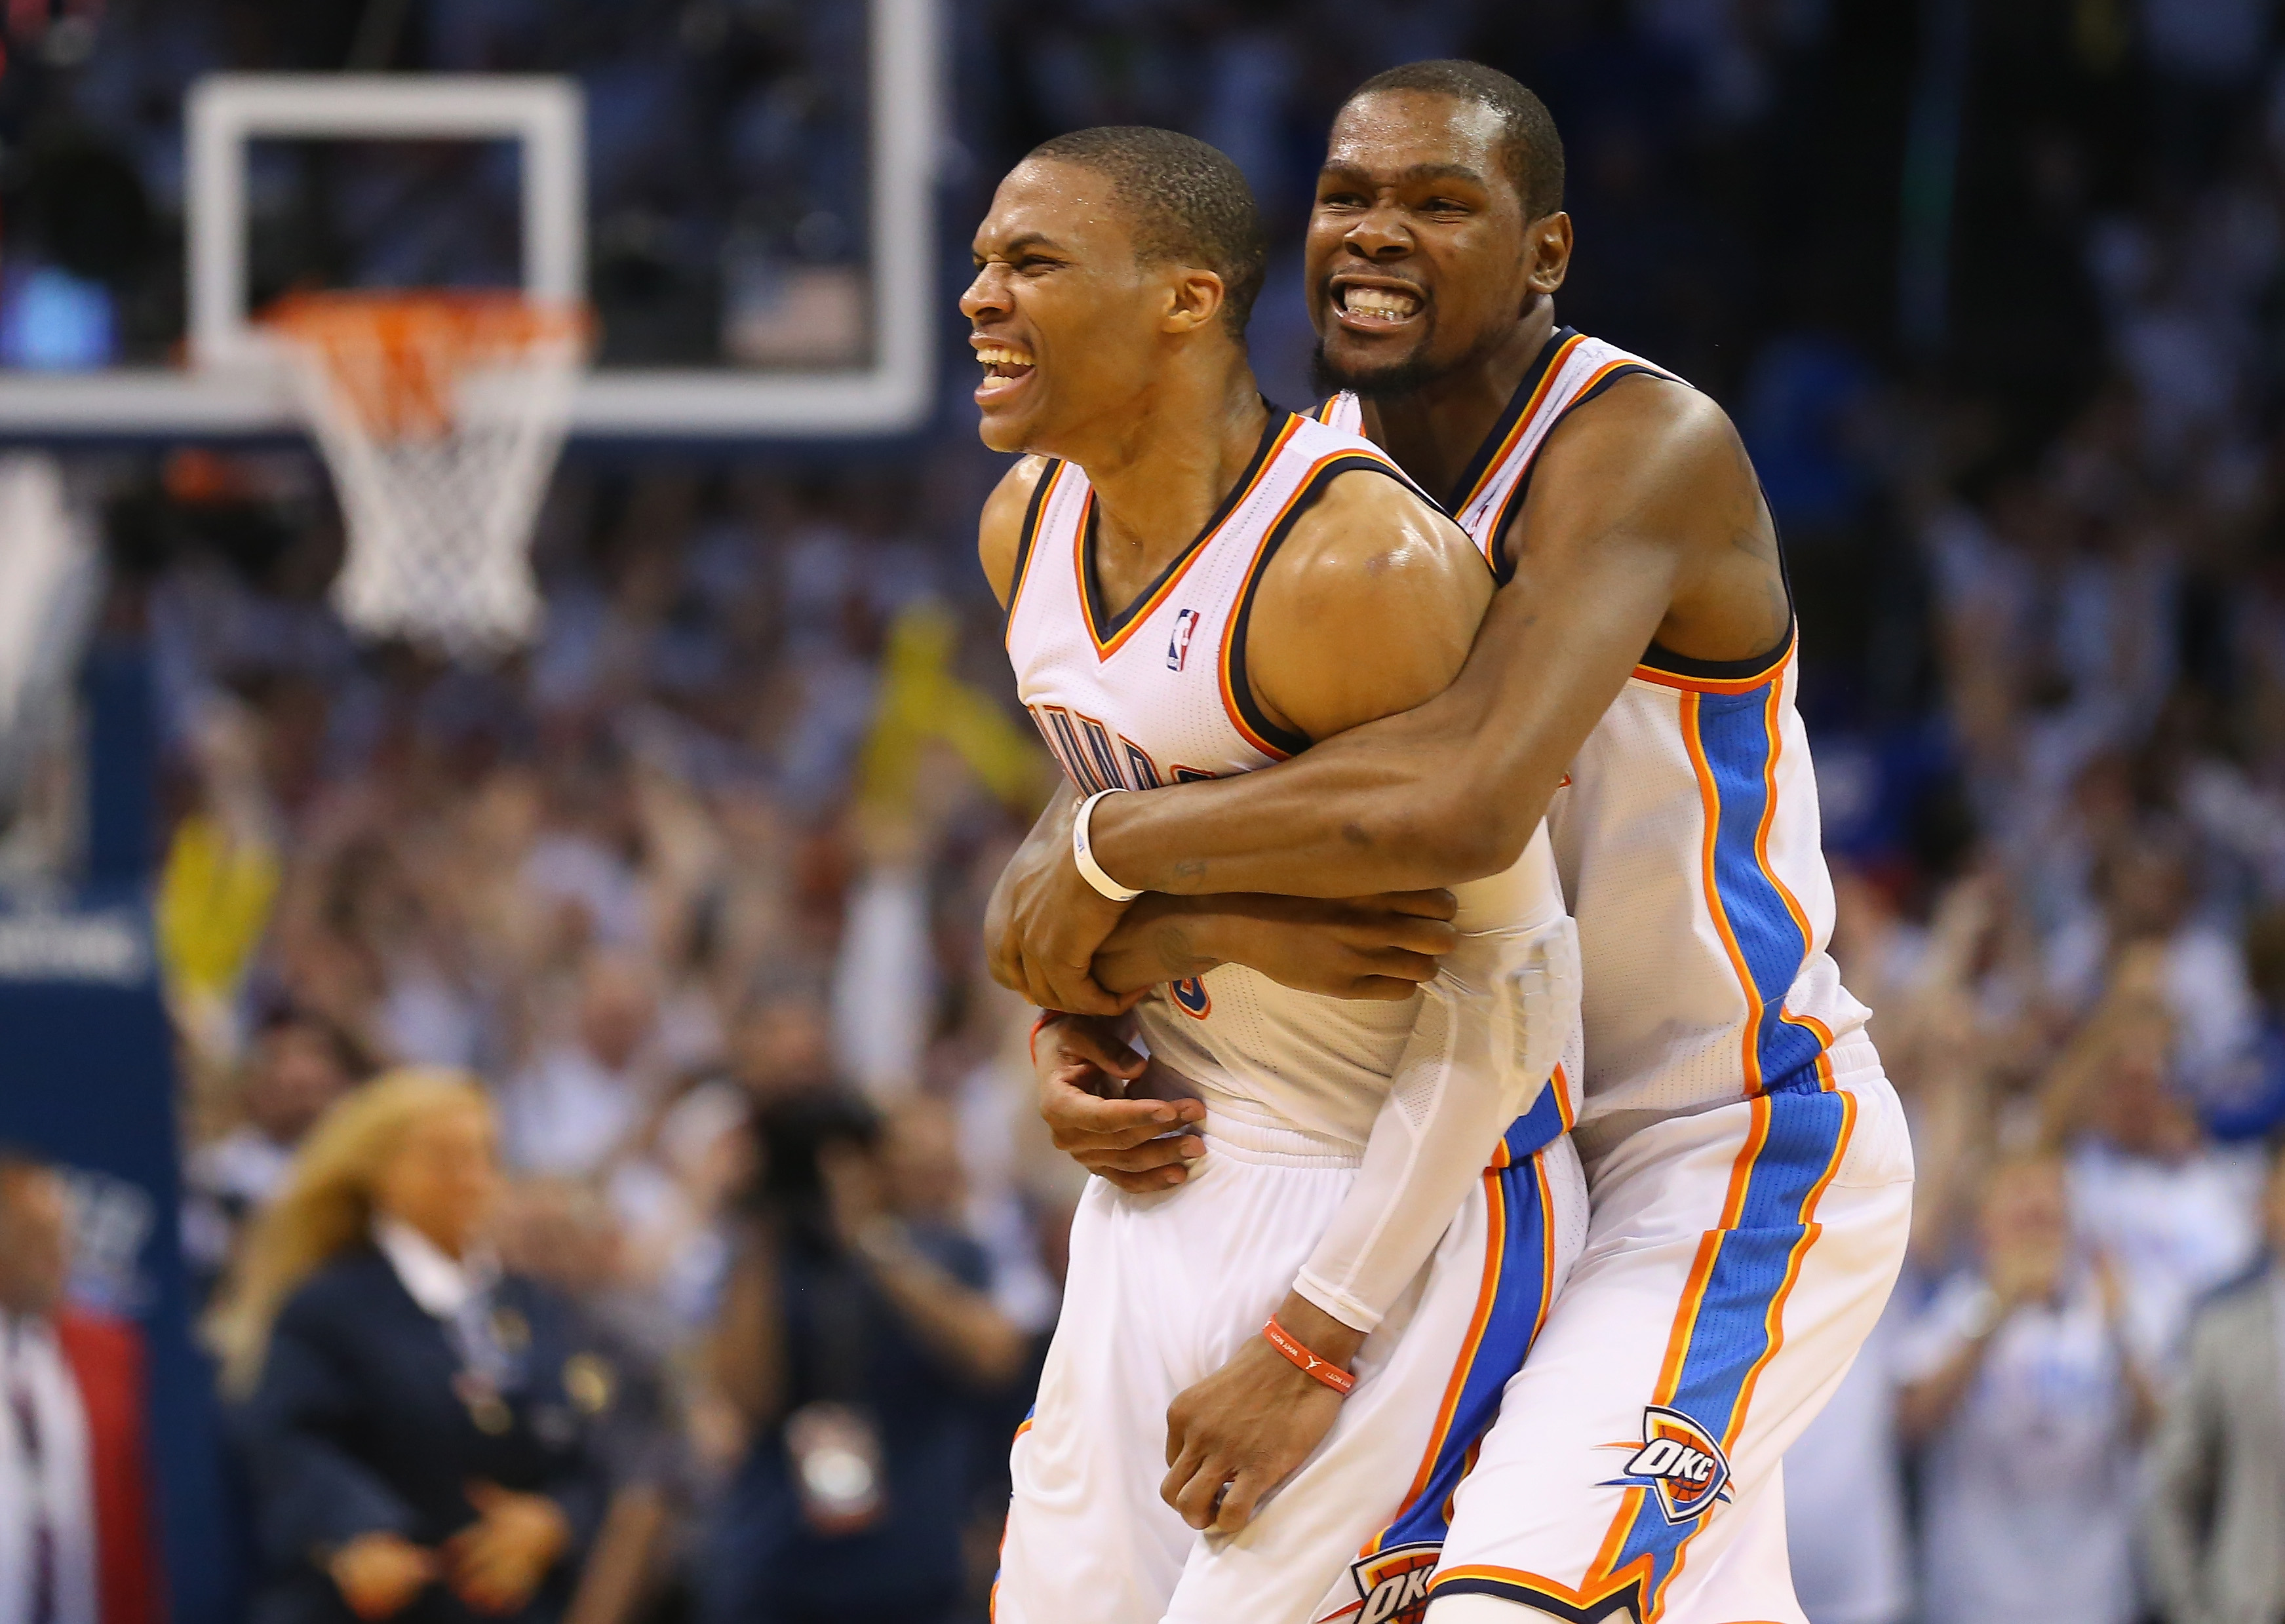 Westbrook e Durant, stelle degli Oklahoma City Thunder (forse all'ultima stagione insieme)